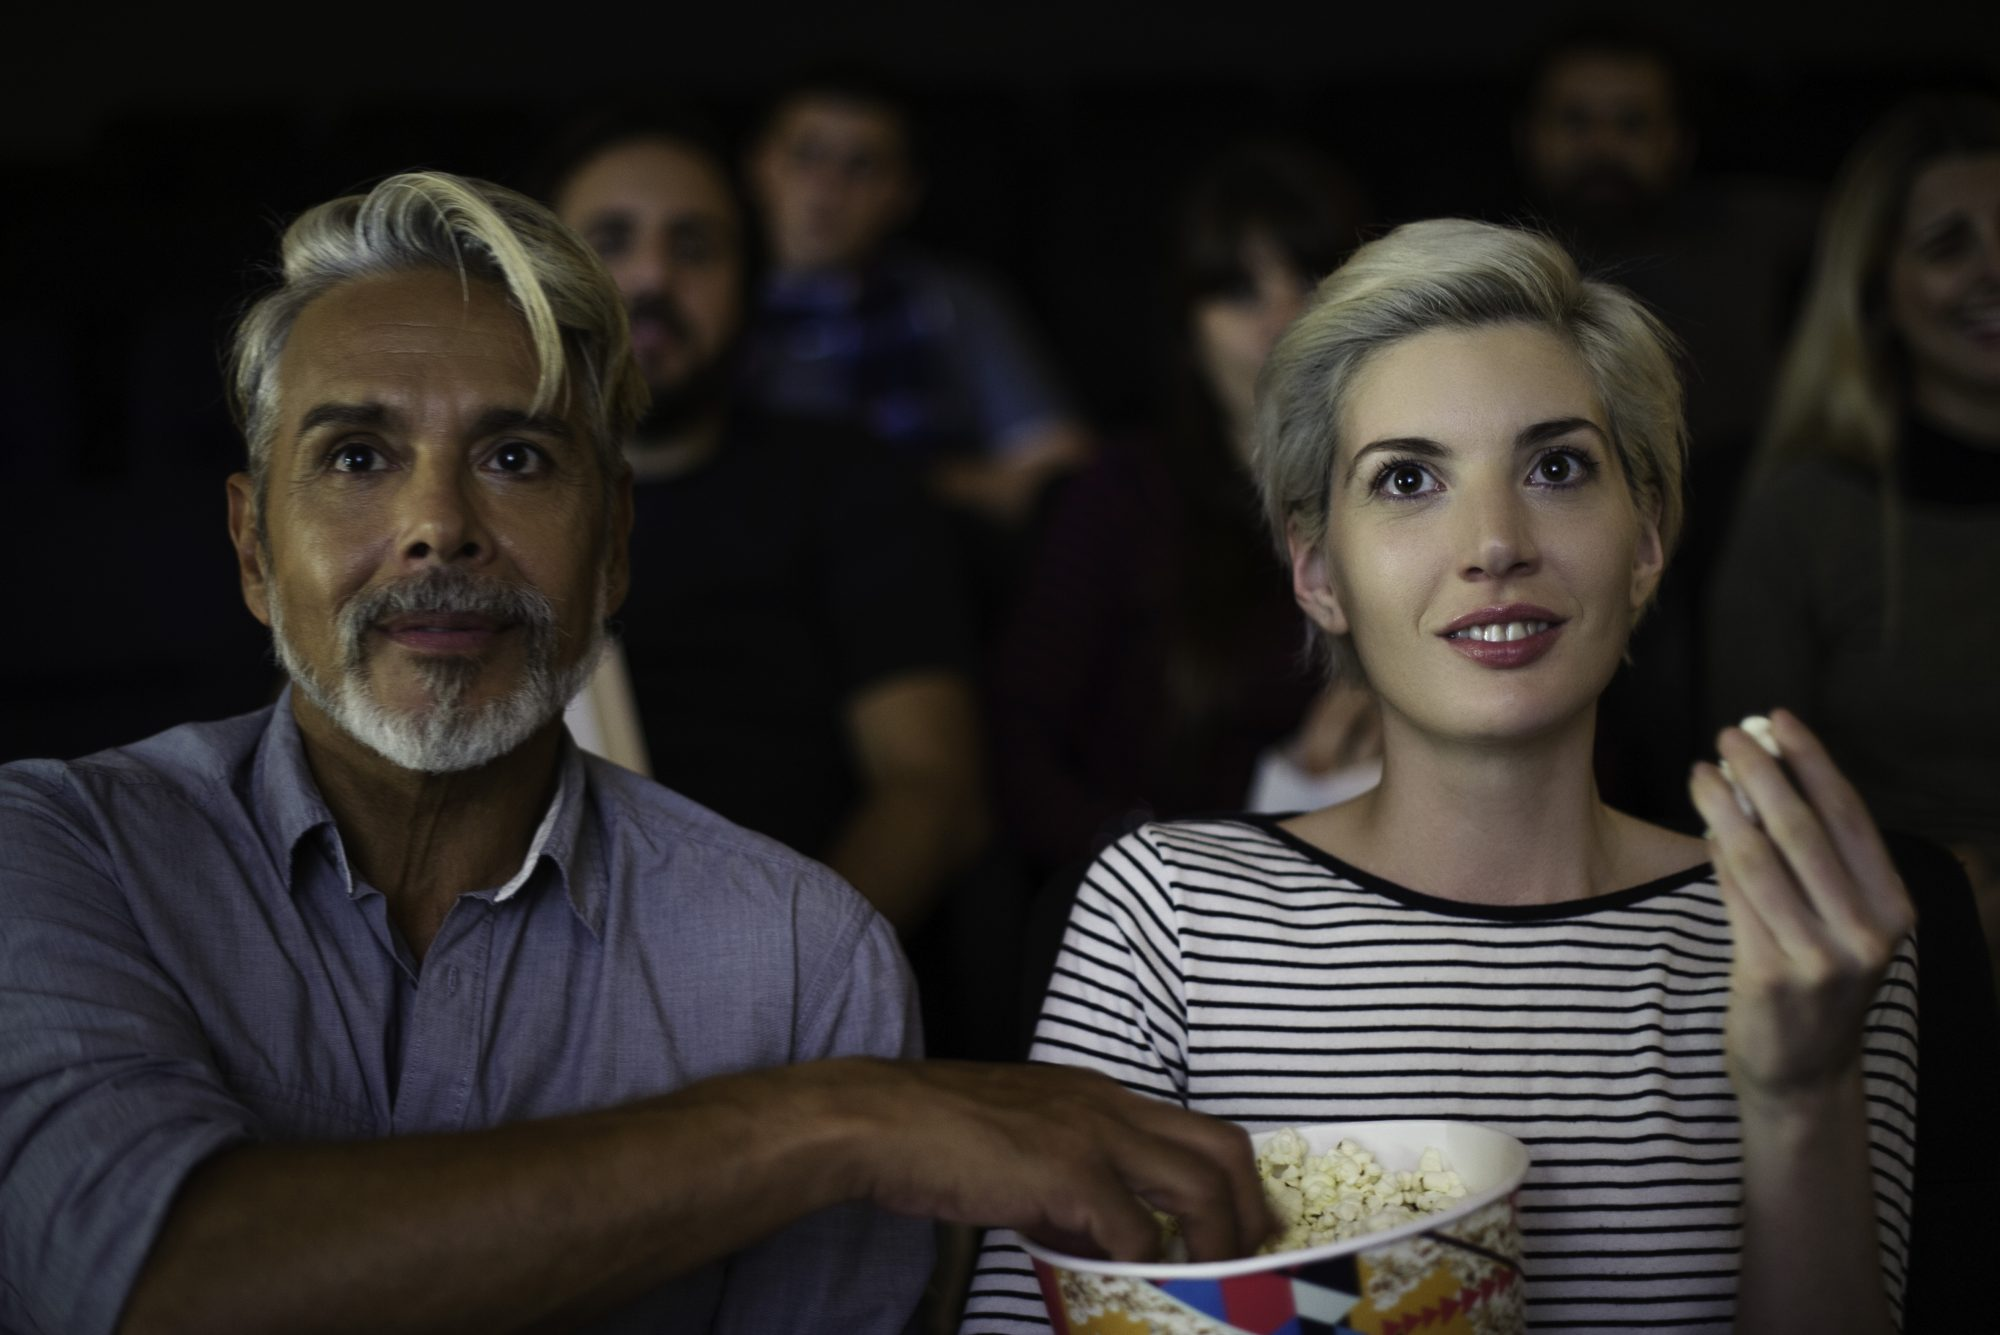 Couple at Movies with Popcorn Bucket